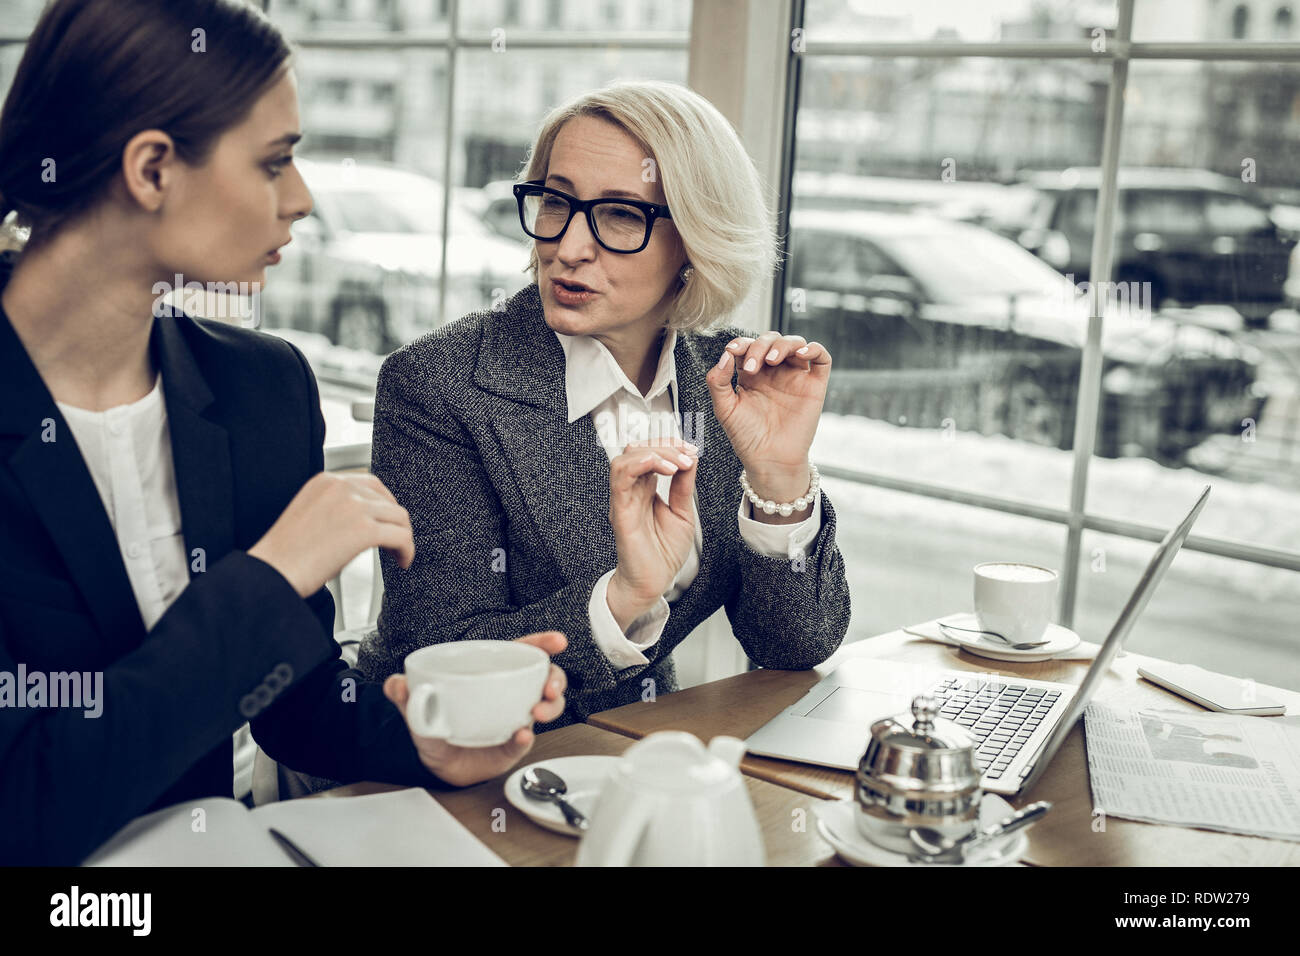 Blonde-haired businesswoman giving some instructions to her trainee - Stock Image